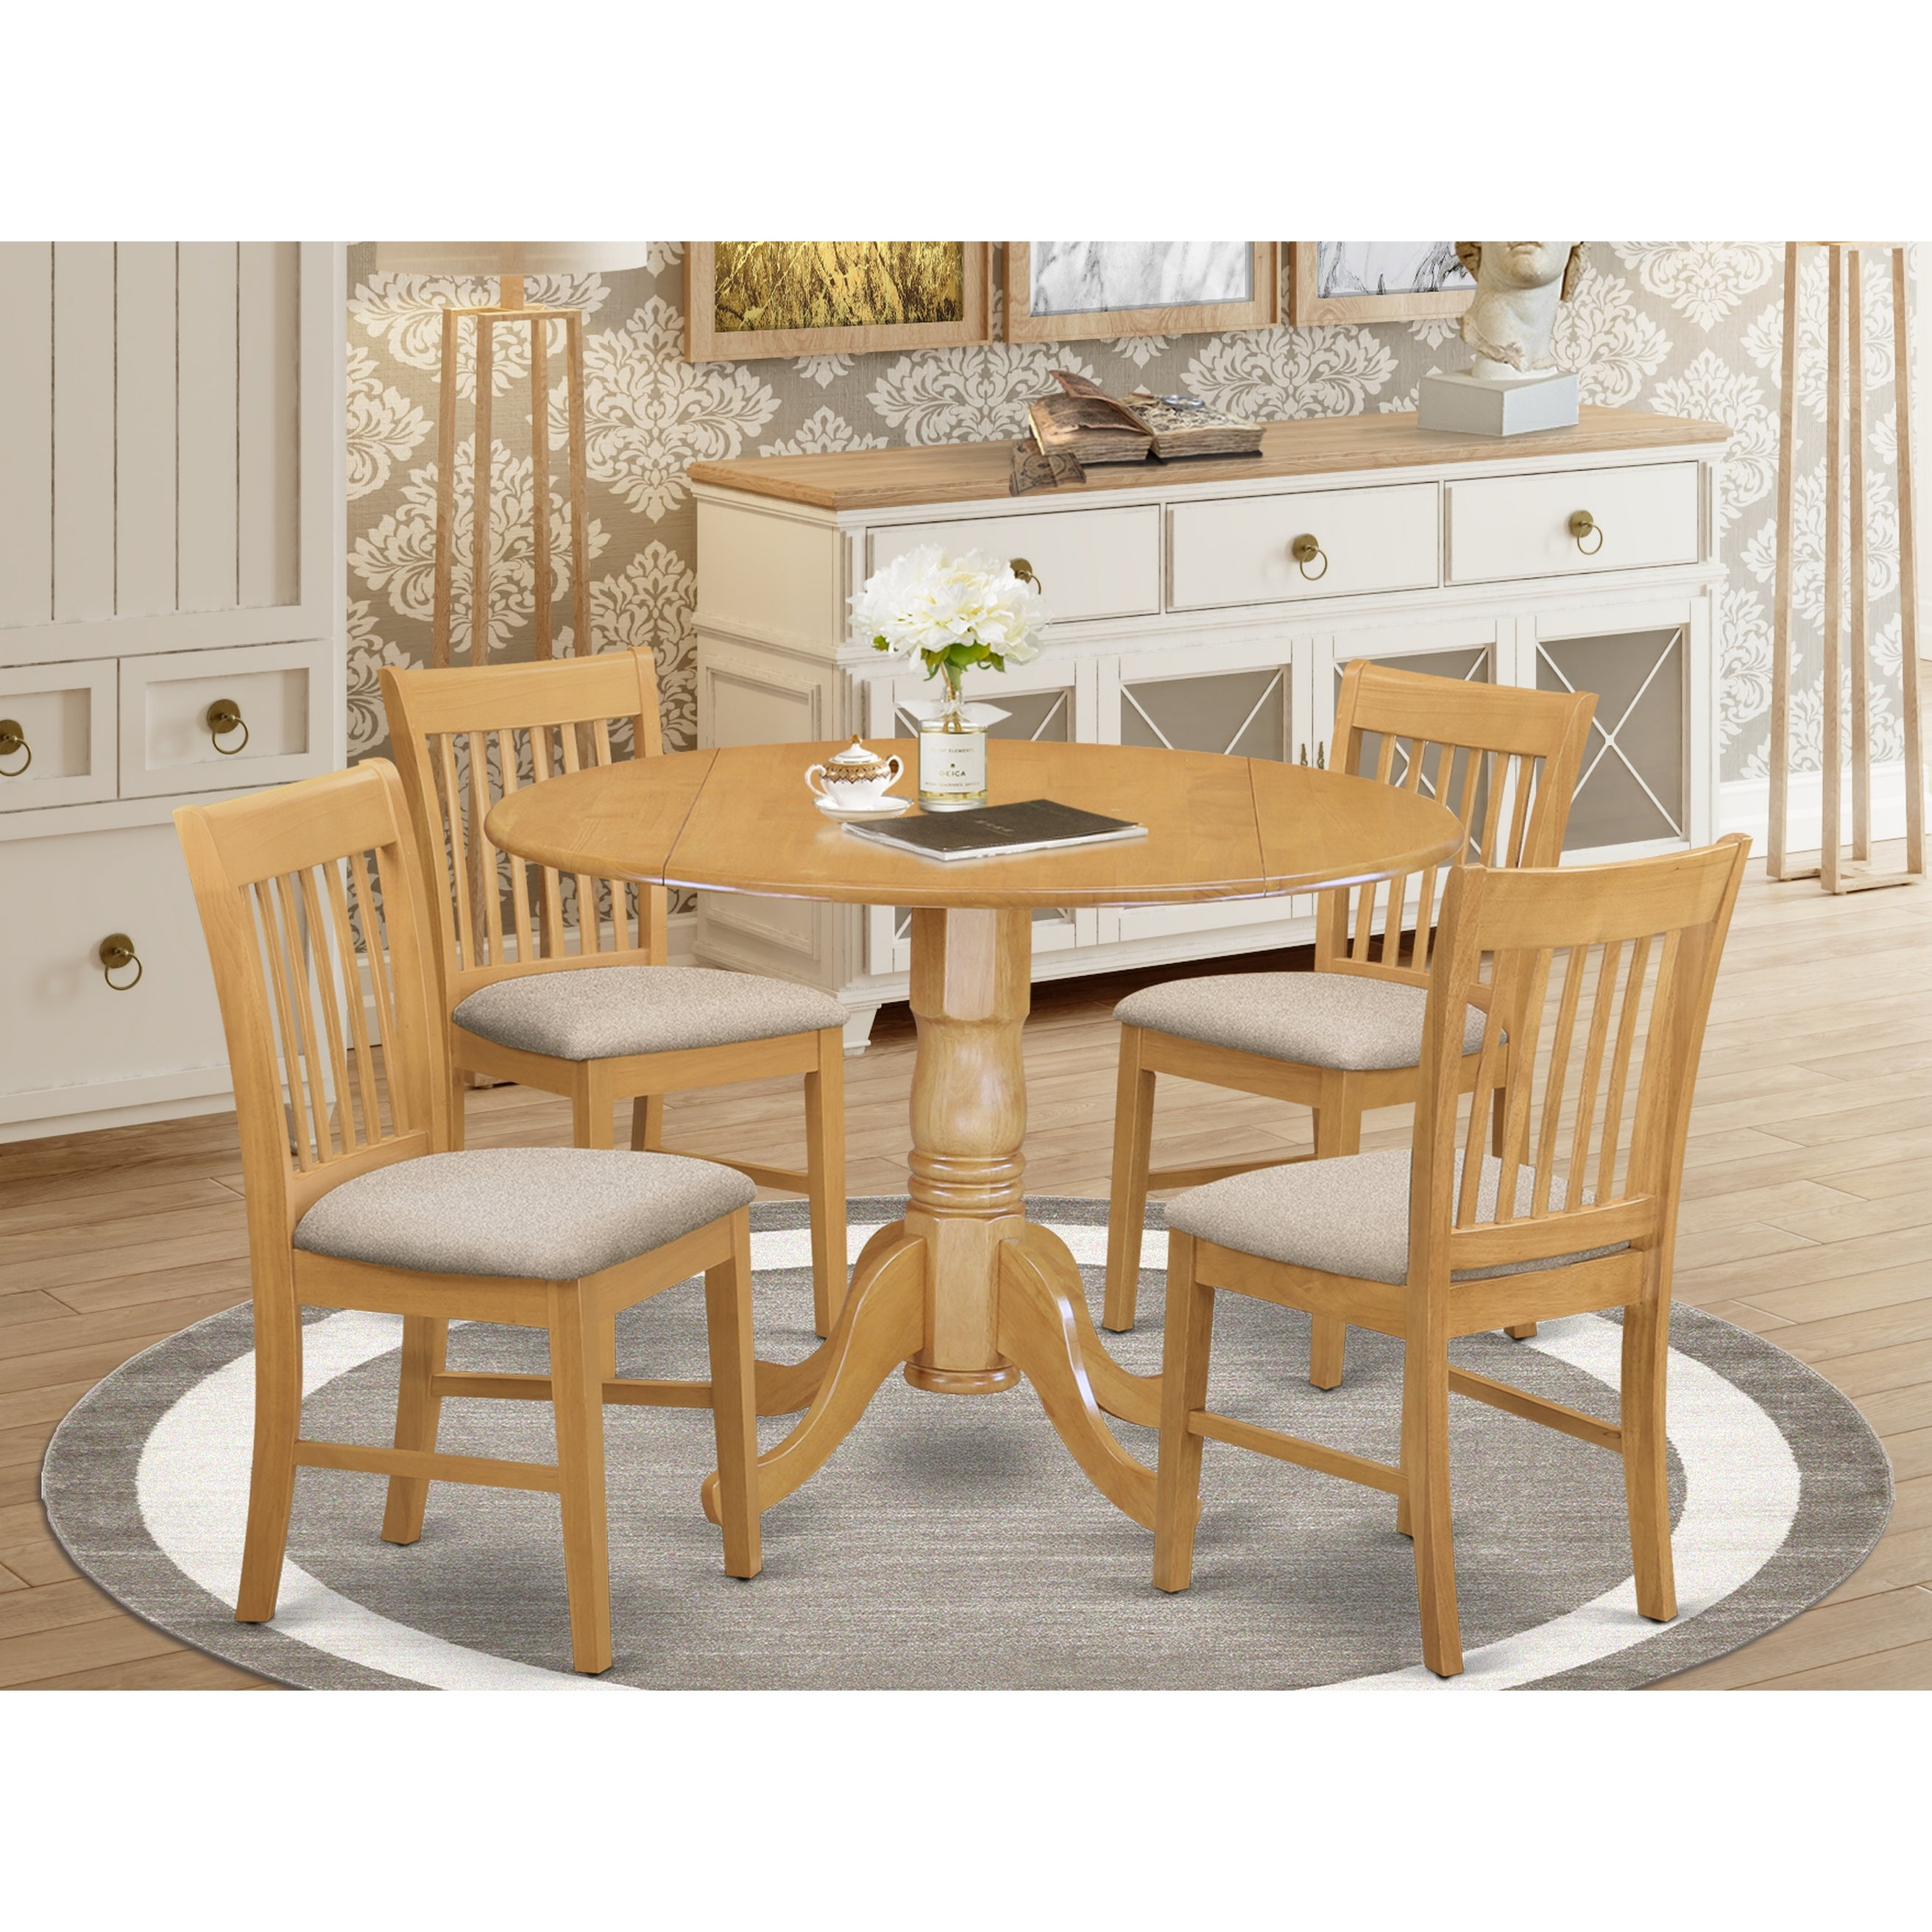 Oak Round Kitchen Table and 4 Chairs 4-piece Dining Set